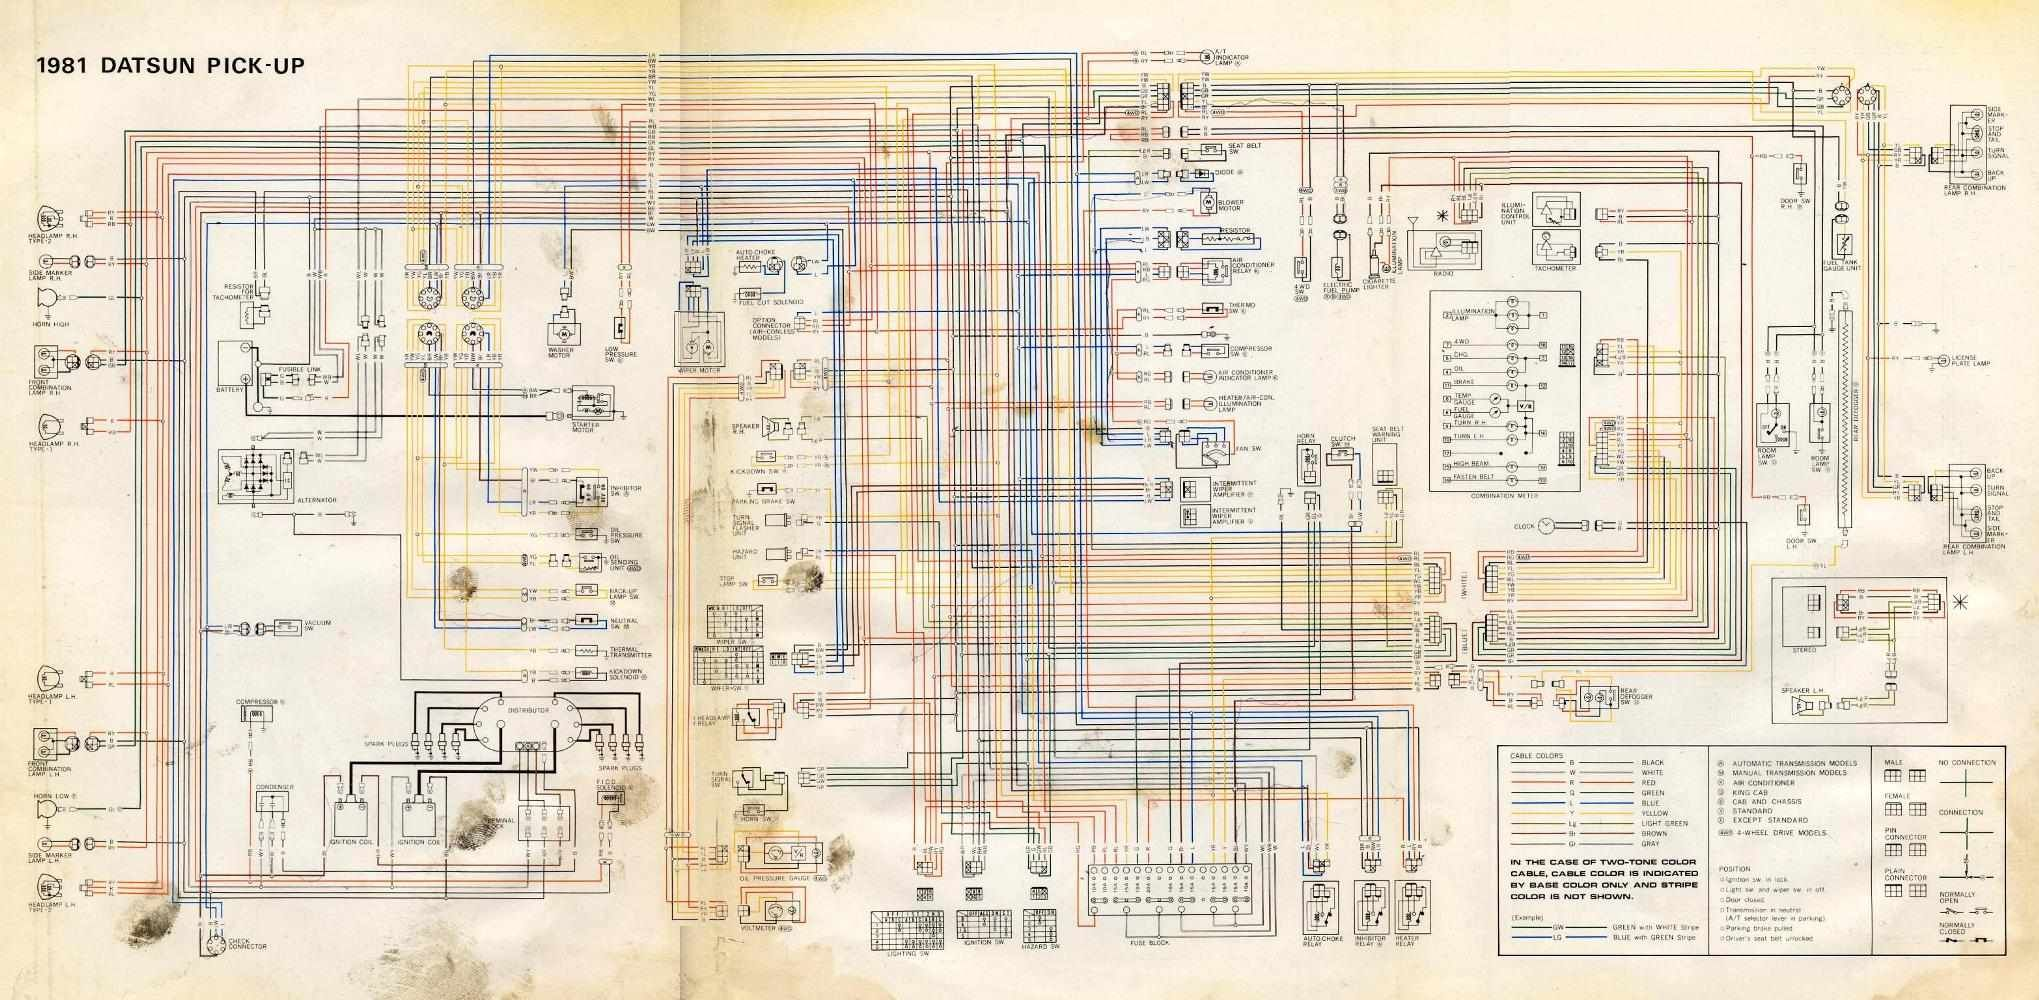 willys mb wiring diagram toyota celica at 1977 datsun 280z [ 2039 x 1000 Pixel ]